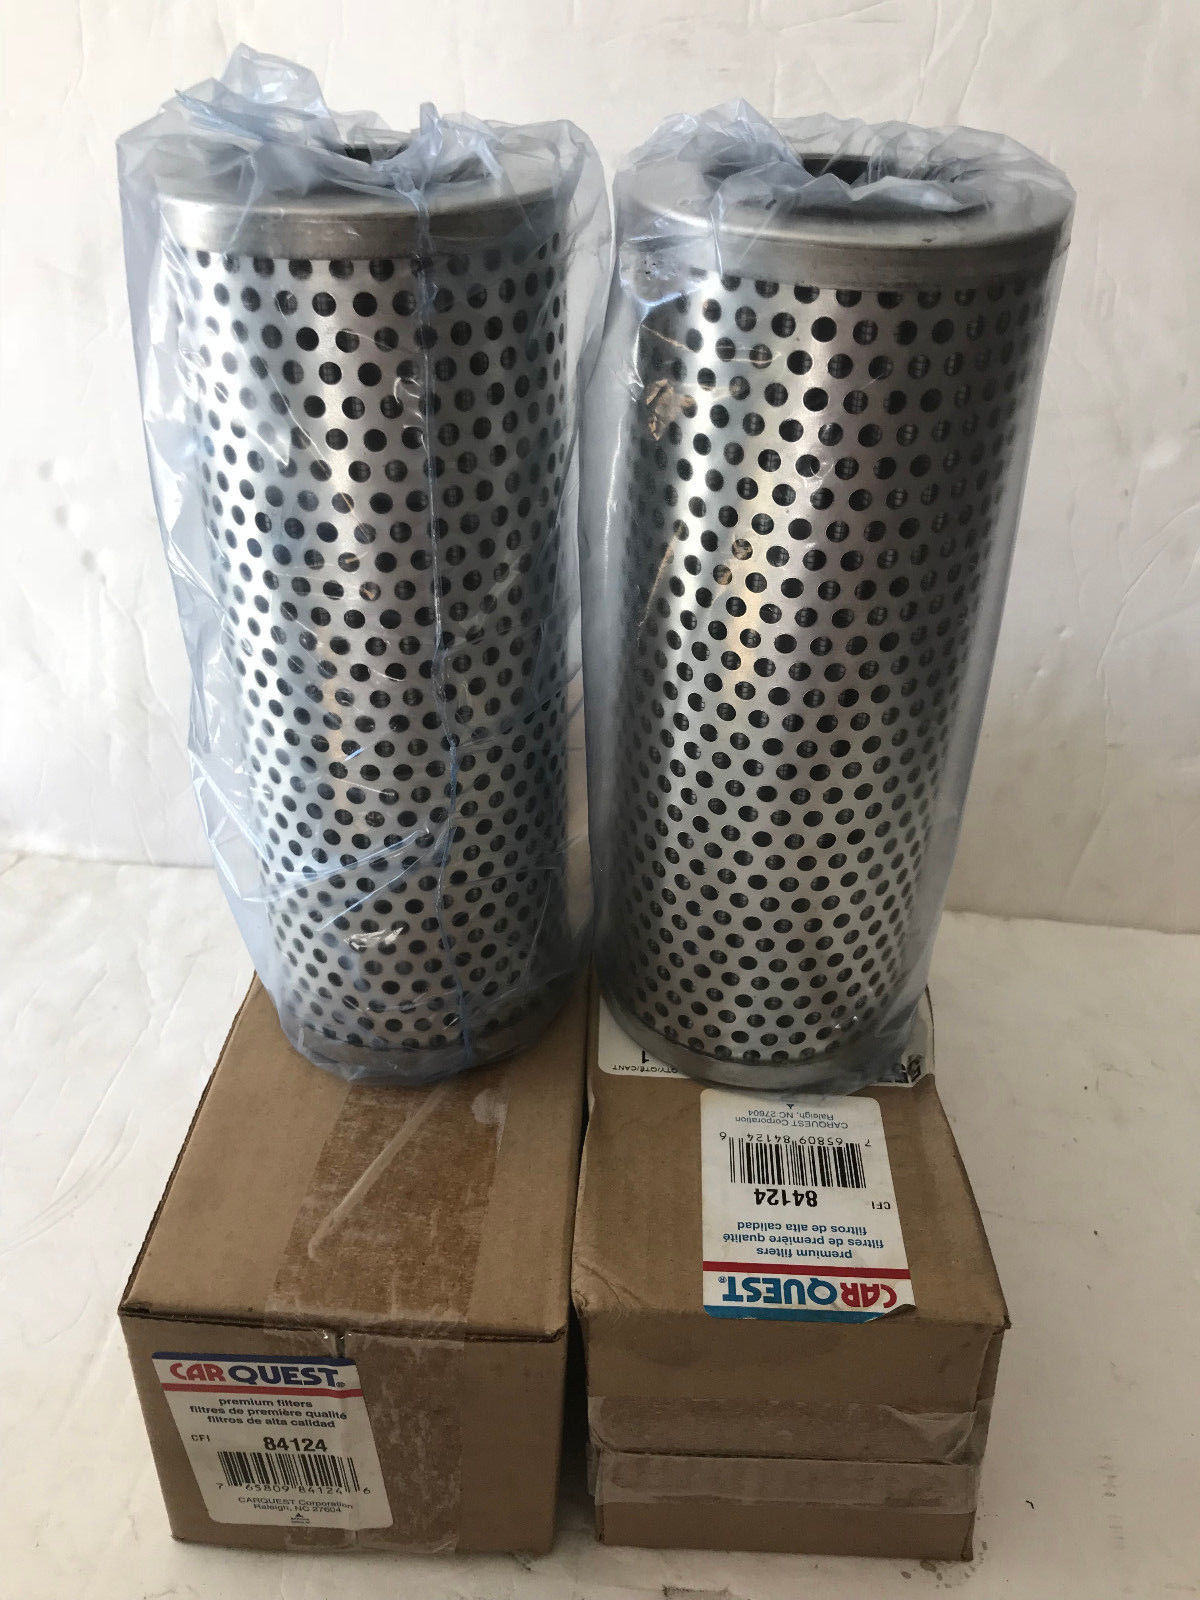 Carquest Page 1 M300 Fuel Filter Lot Of 2 84124 Emcarquest Em Hydraulic